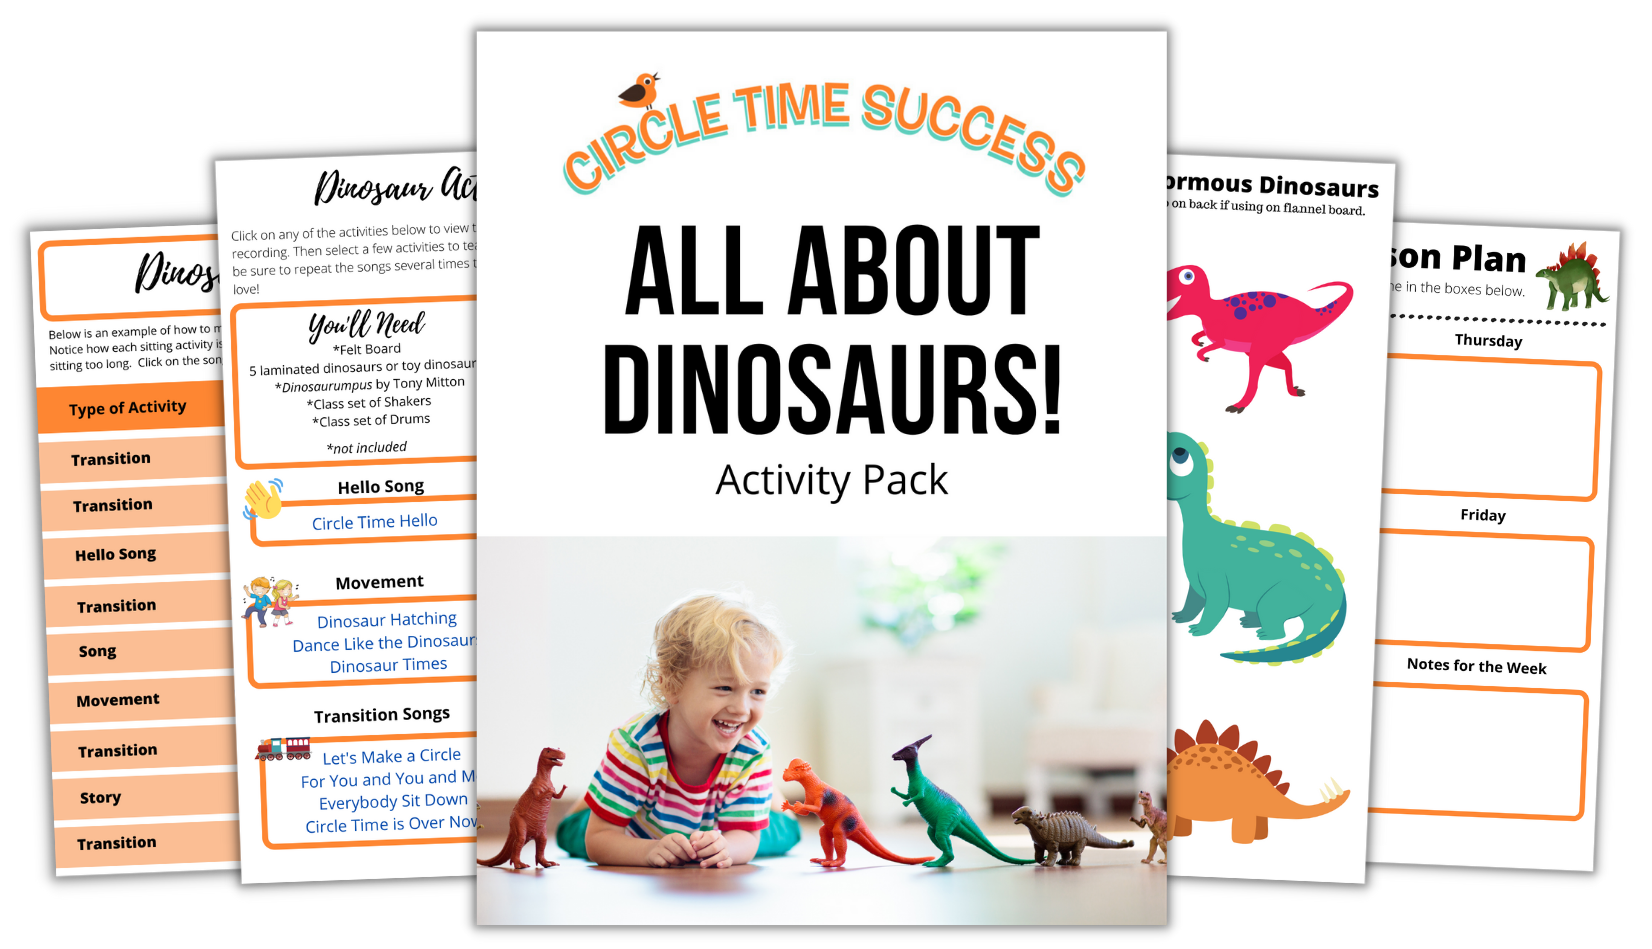 All About Dinosaurs Activity Pack | Circle Time Success